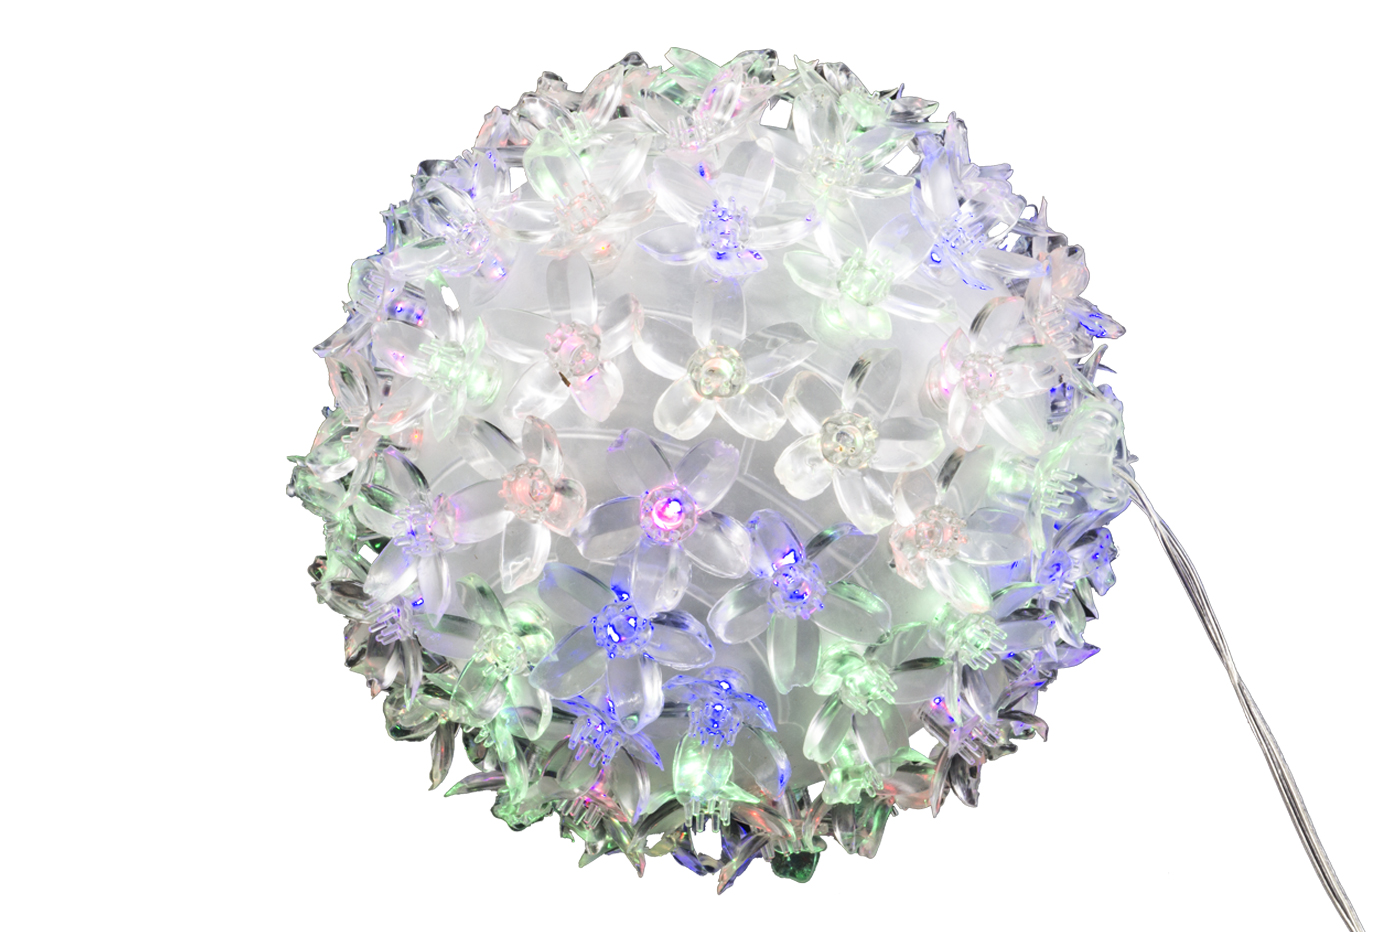 PALLA 150 LED SFERA LUMINOSA NATALE DECORAZIONI FIORI LUCI NATALIZIE MULTICOLOR